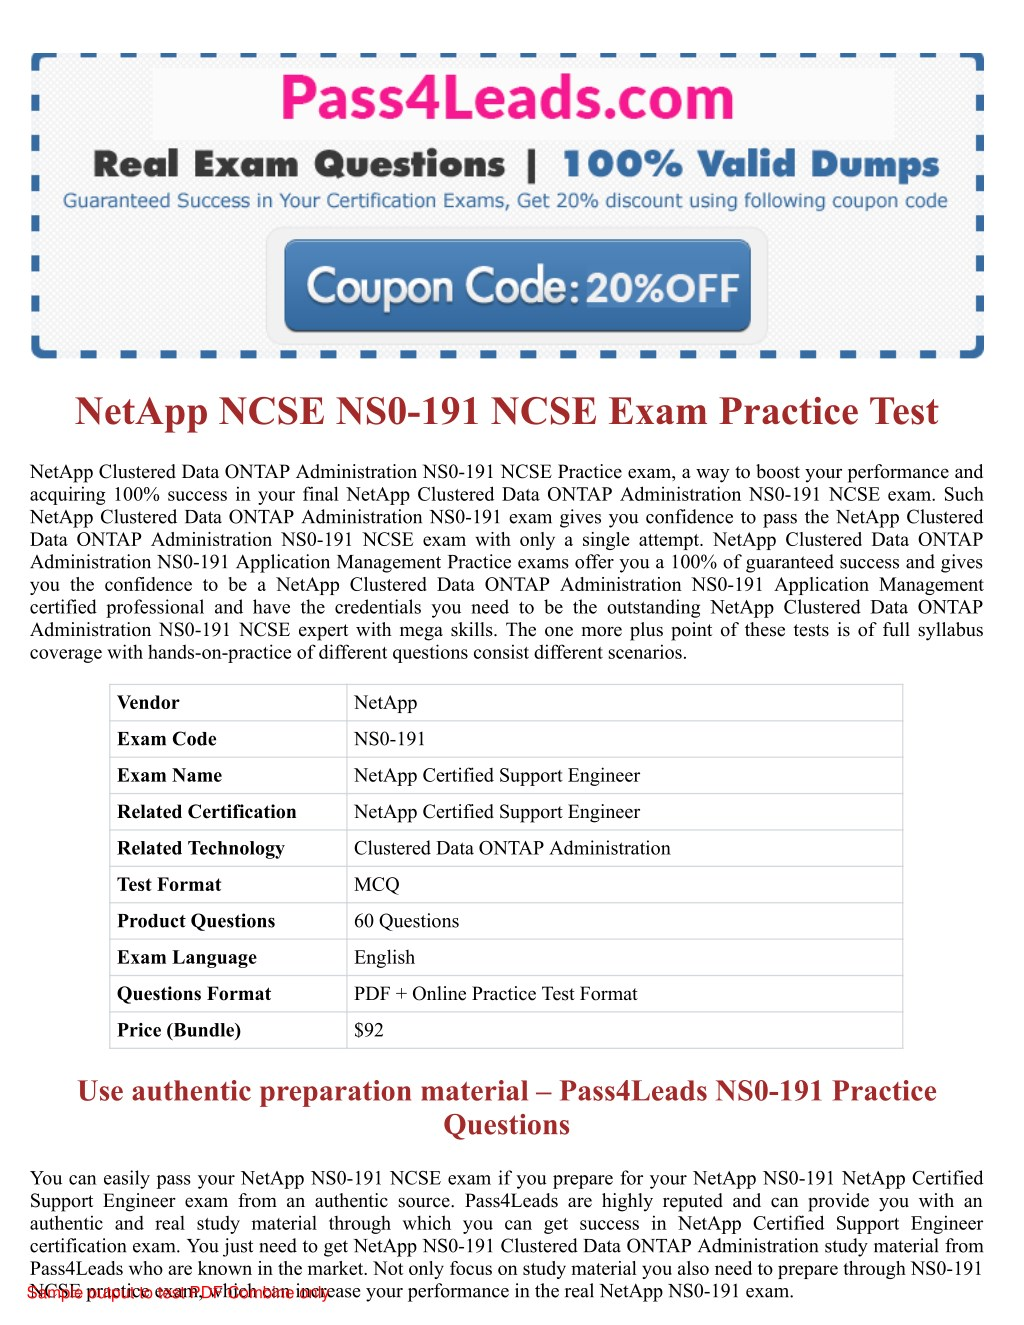 Ppt Netapp Ns0 191 Ncse Exam Practice Questions 2018 Updated